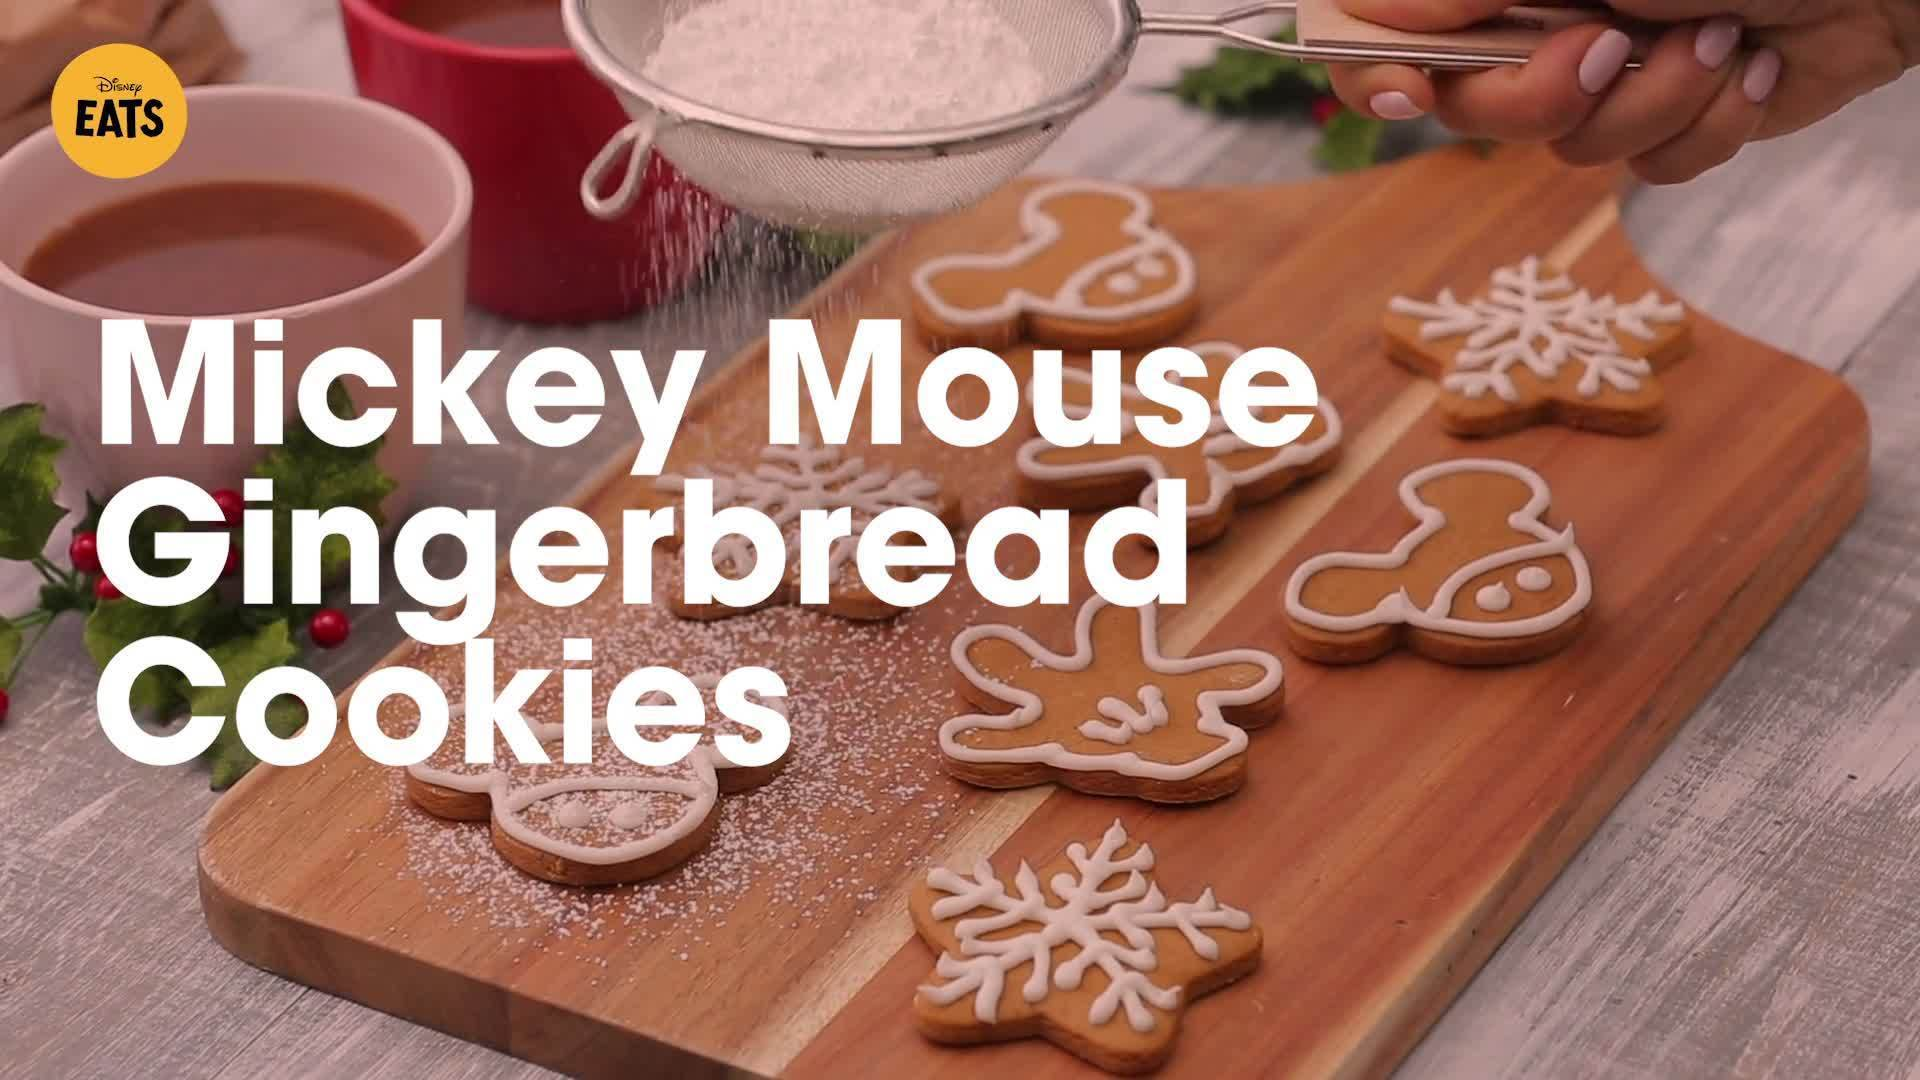 Mickey Mouse Gingerbread Cookies   Disney Eats